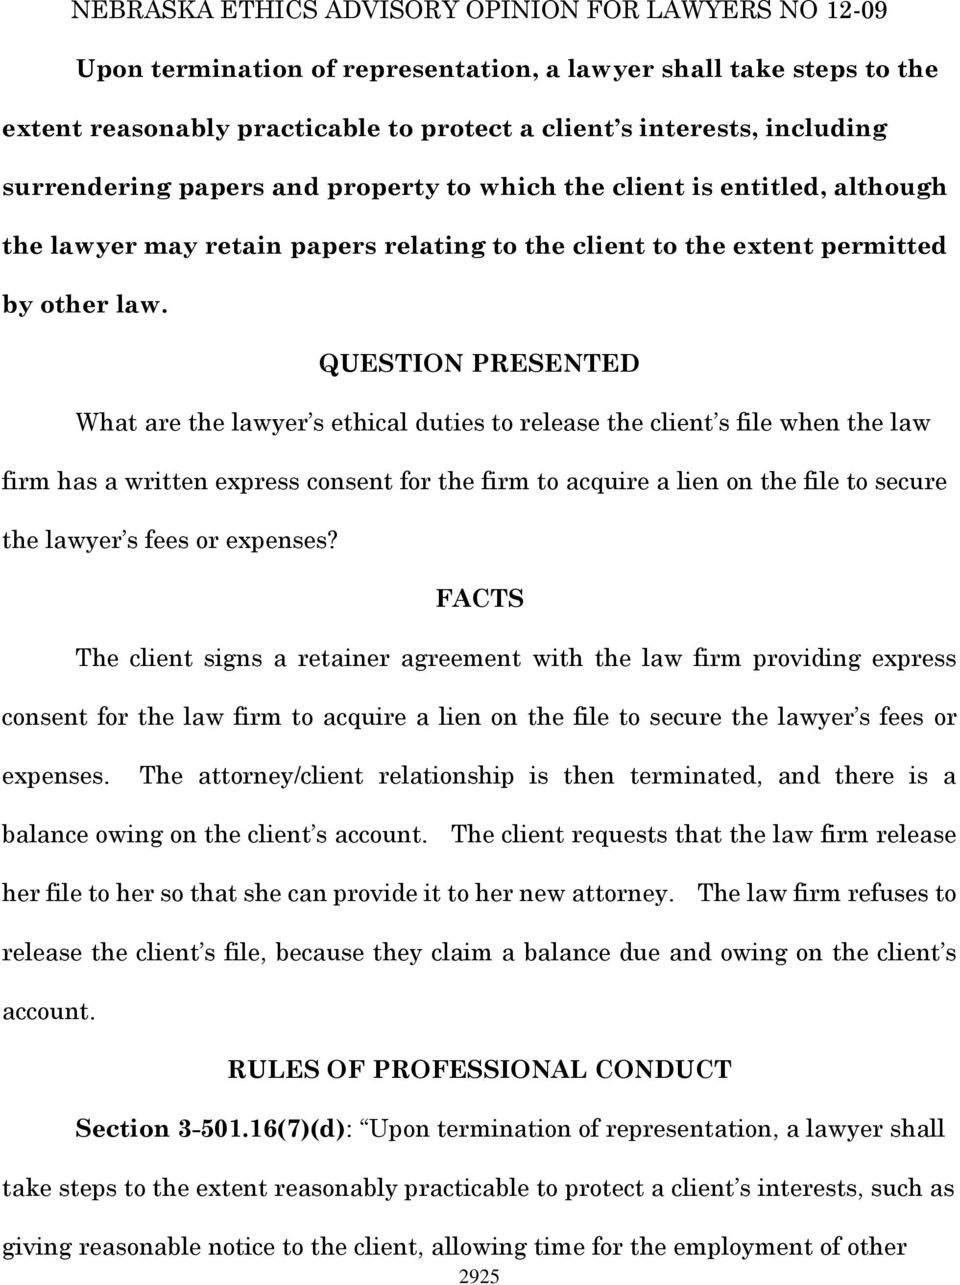 QUESTION PRESENTED What are the lawyer s ethical duties to release the client s file when the law firm has a written express consent for the firm to acquire a lien on the file to secure the lawyer s